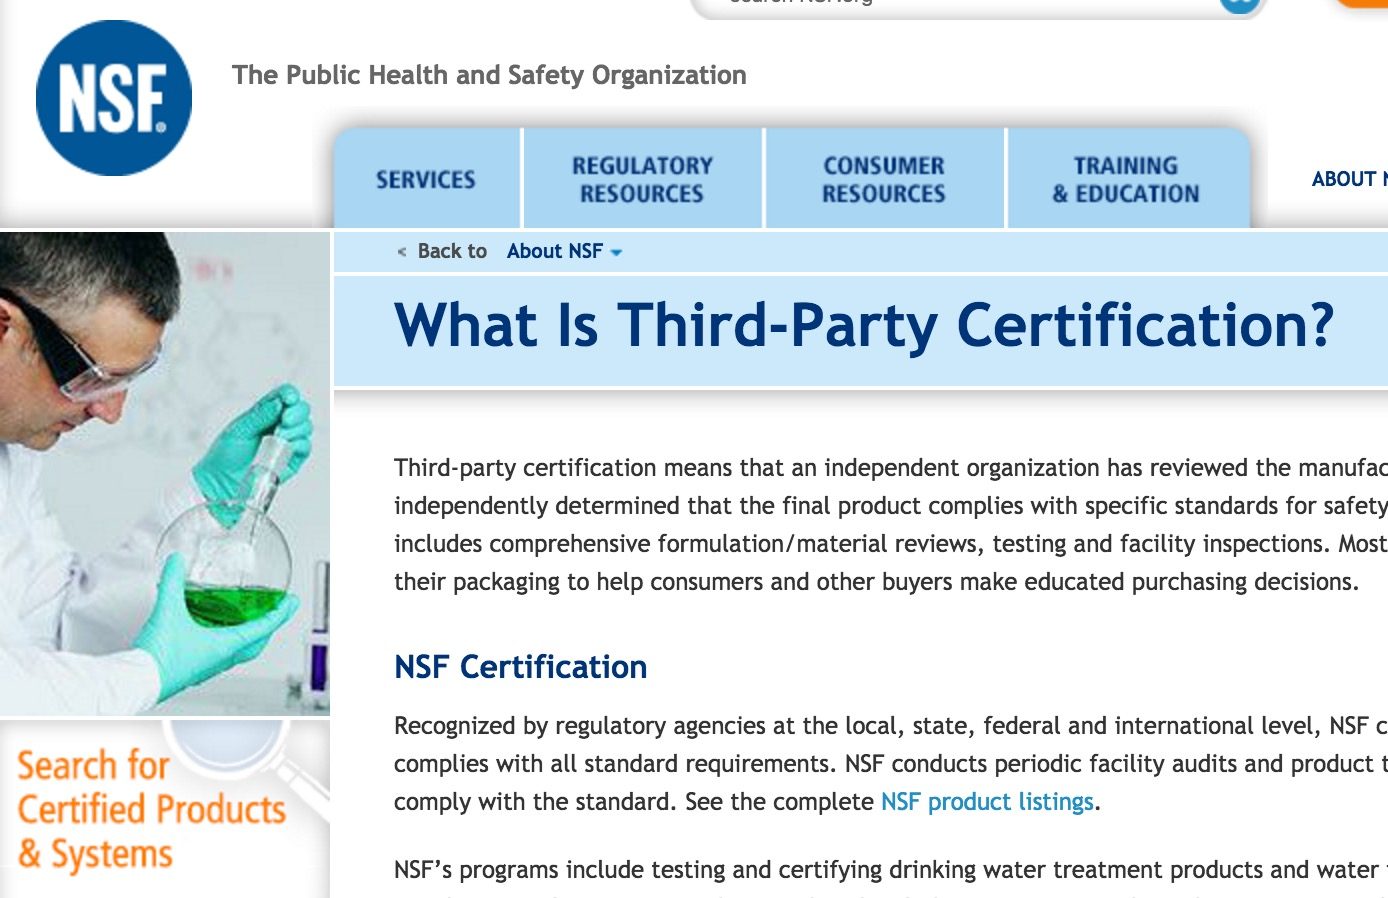 Food Safety: Certification or Regulation? – Economic Thinking